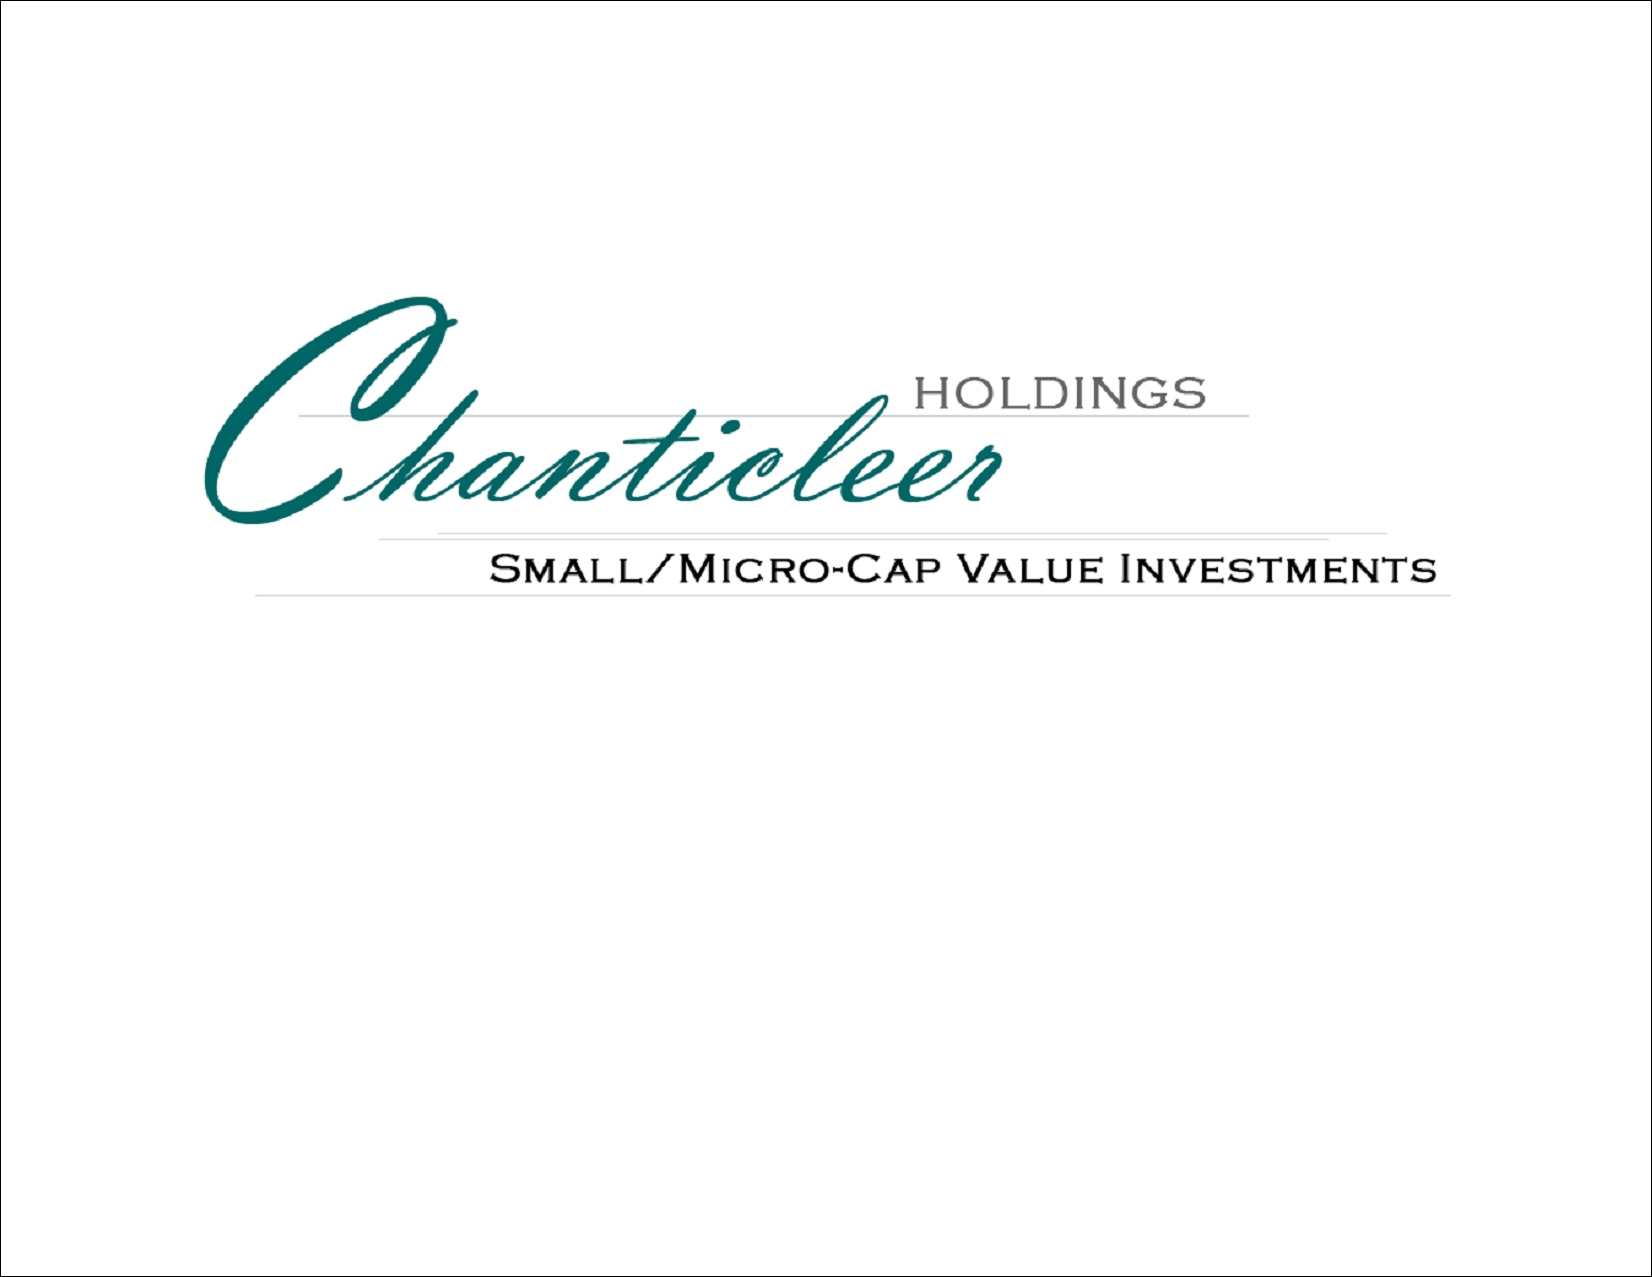 Chanticleer Holdings, Inc logo